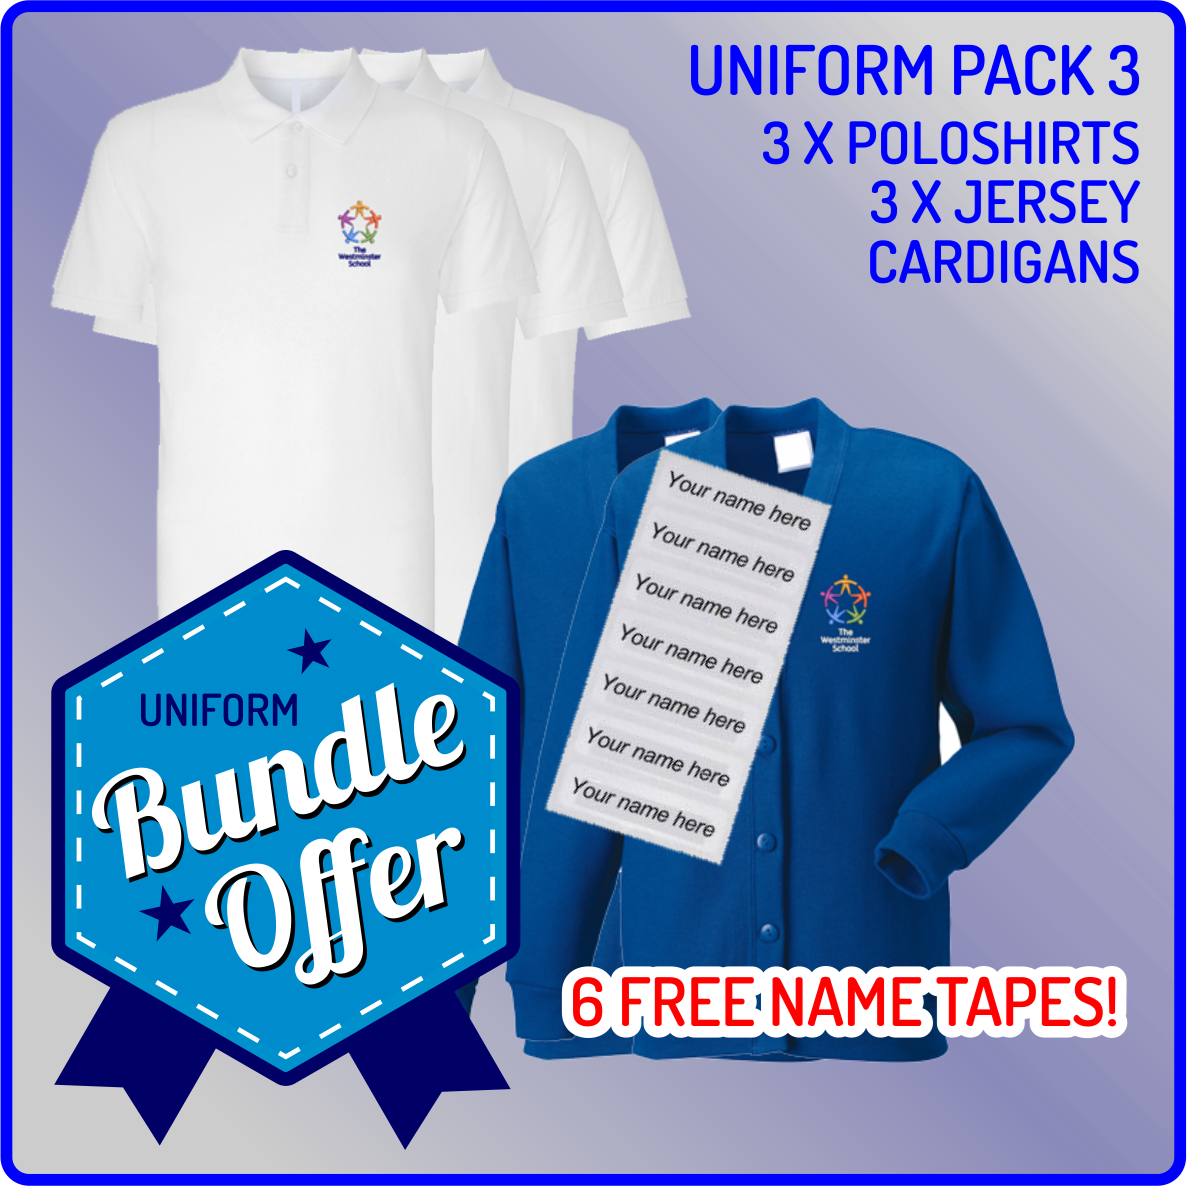 Bundle offer of 3 Jersey Cardigan & 3 Poloshirts - includes FREE name tapes!